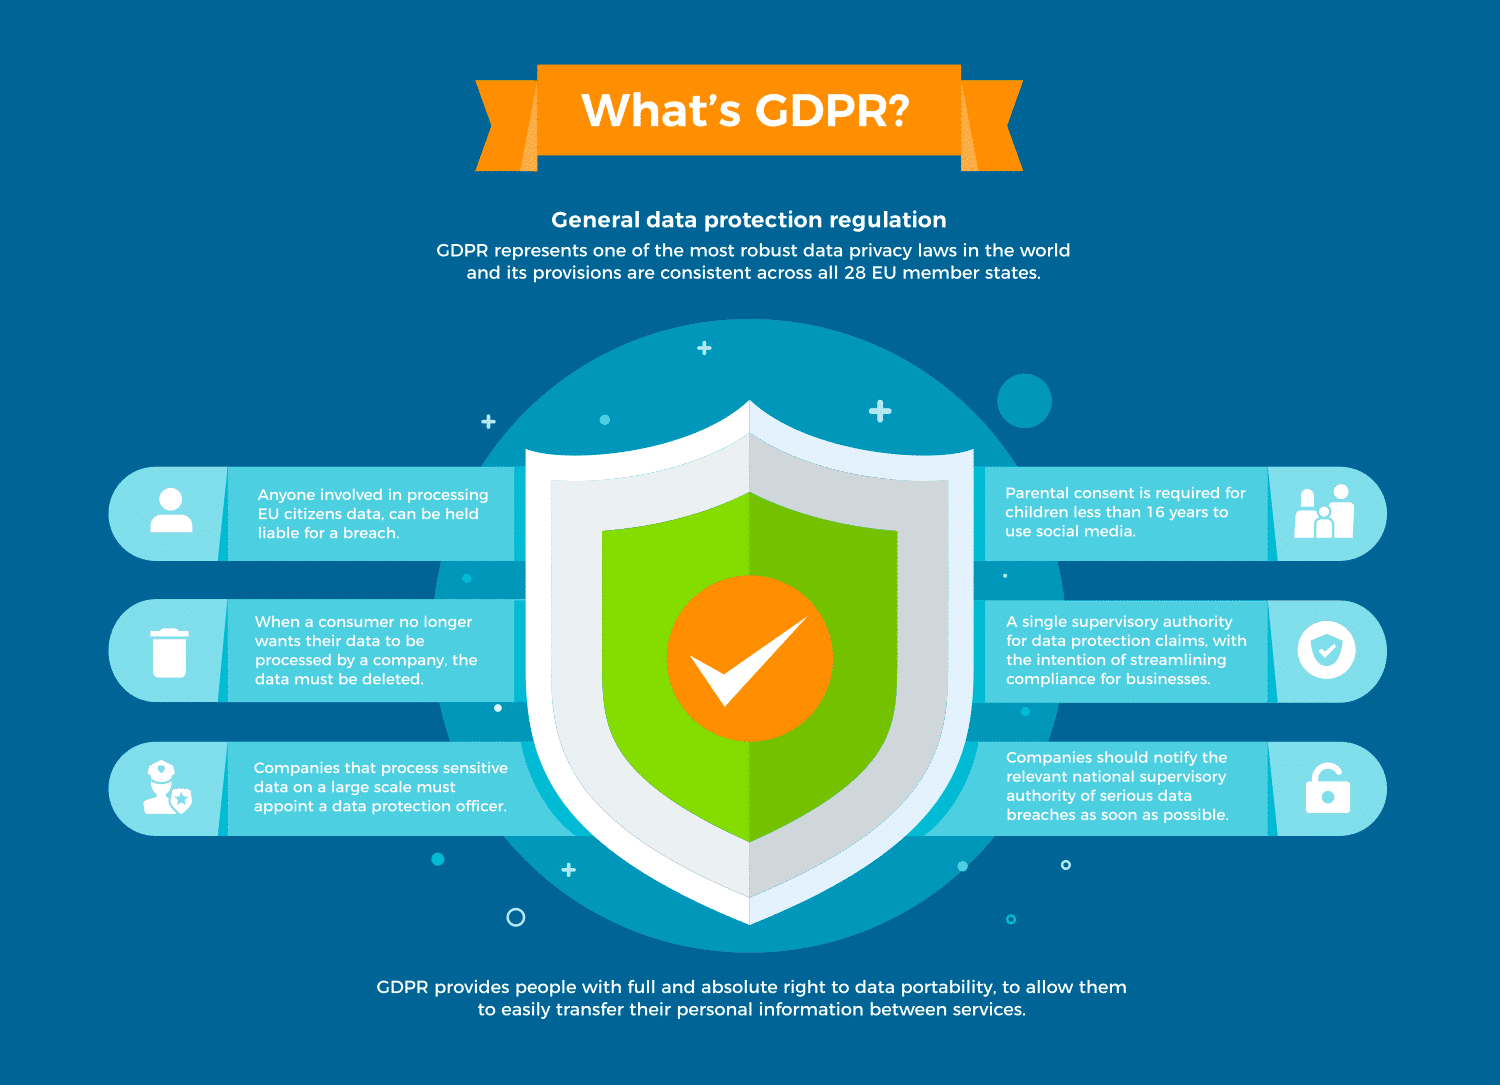 What's GDPR?